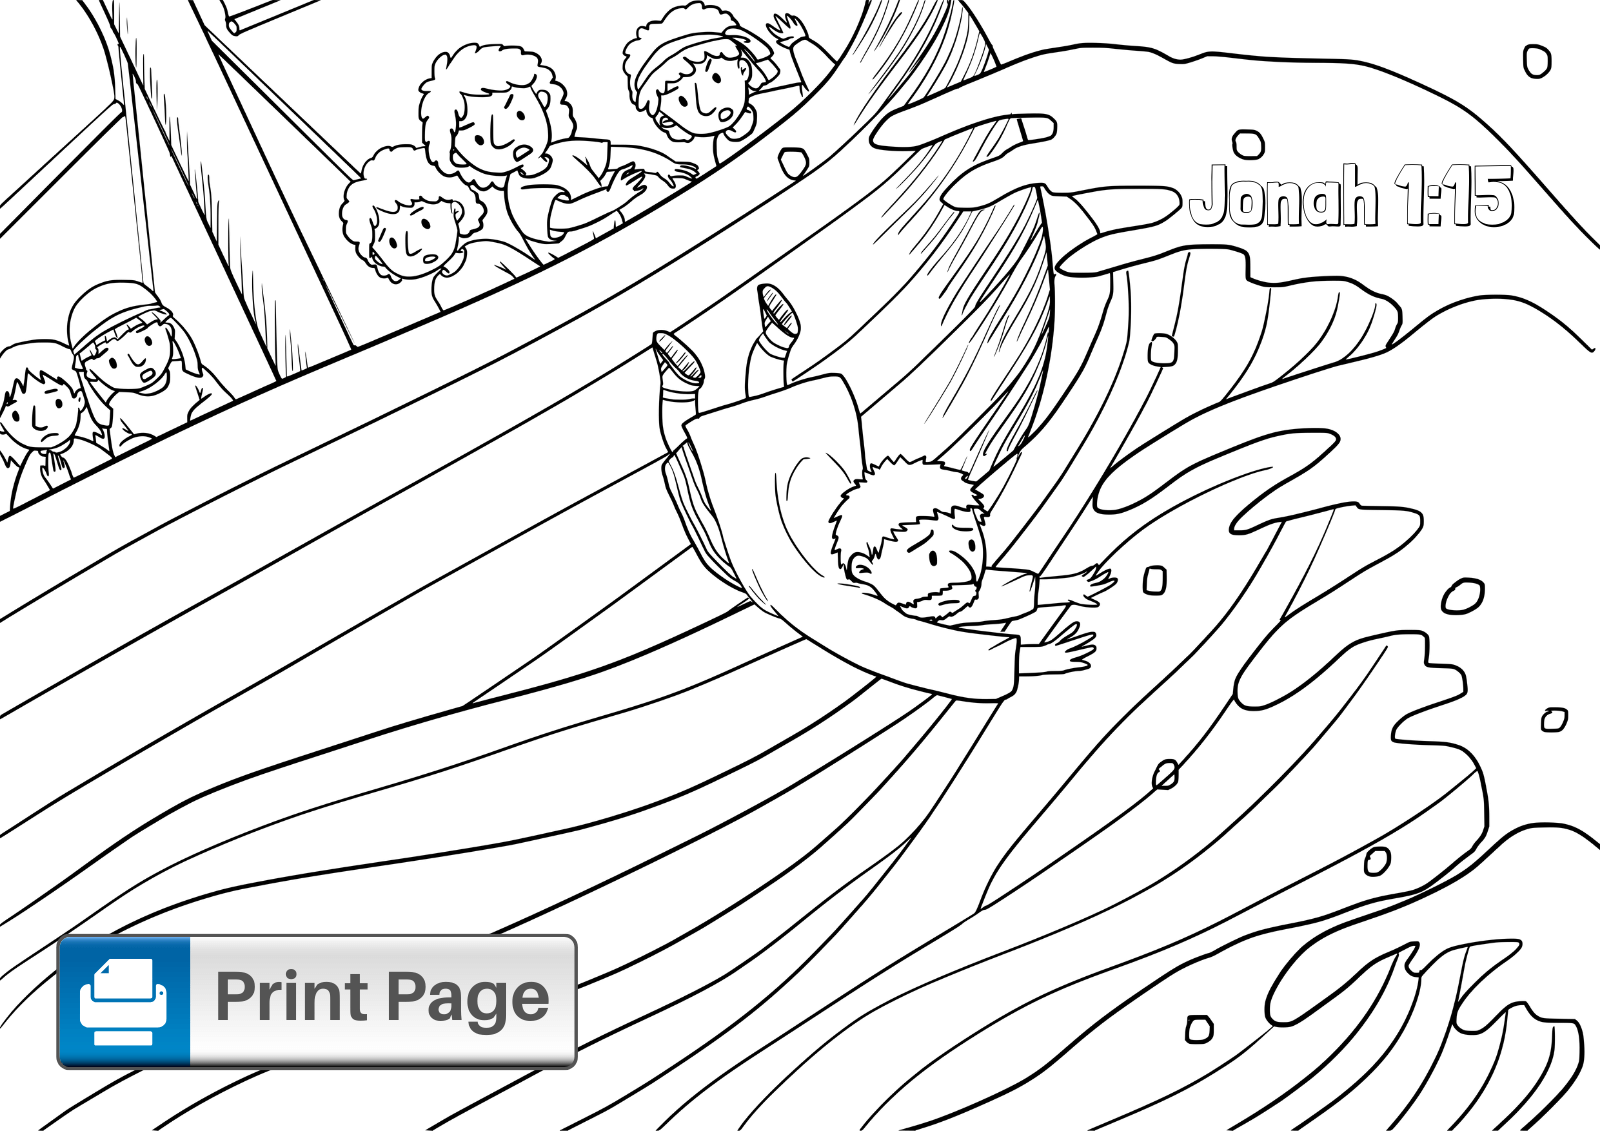 jonah coloring page jonah and the whale bible story coloring pages coloring home jonah page coloring